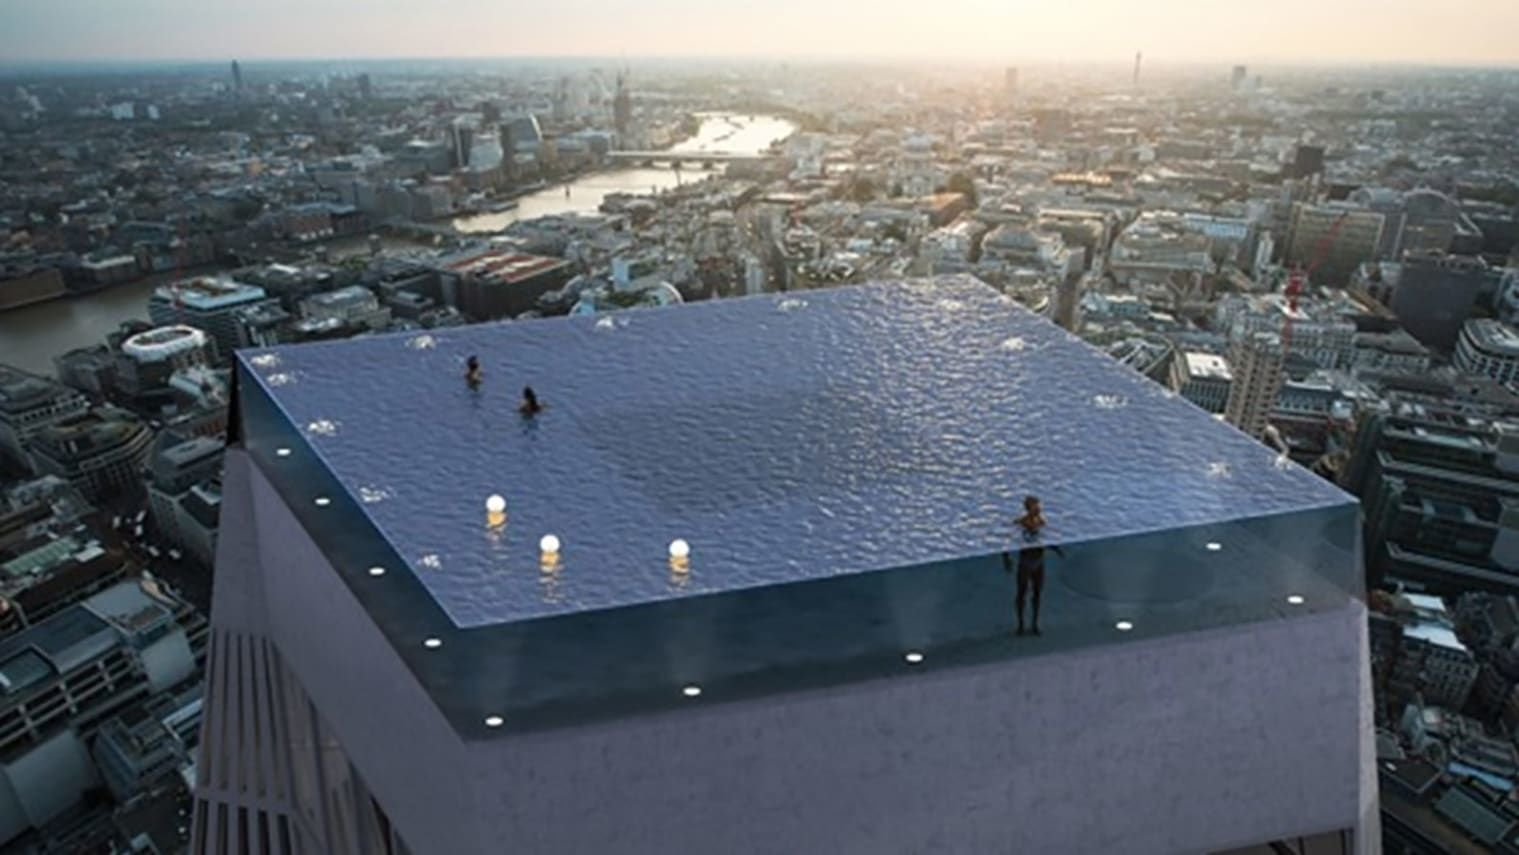 The world's first 360-degree infinity pool is coming to London | DeviceDaily.com